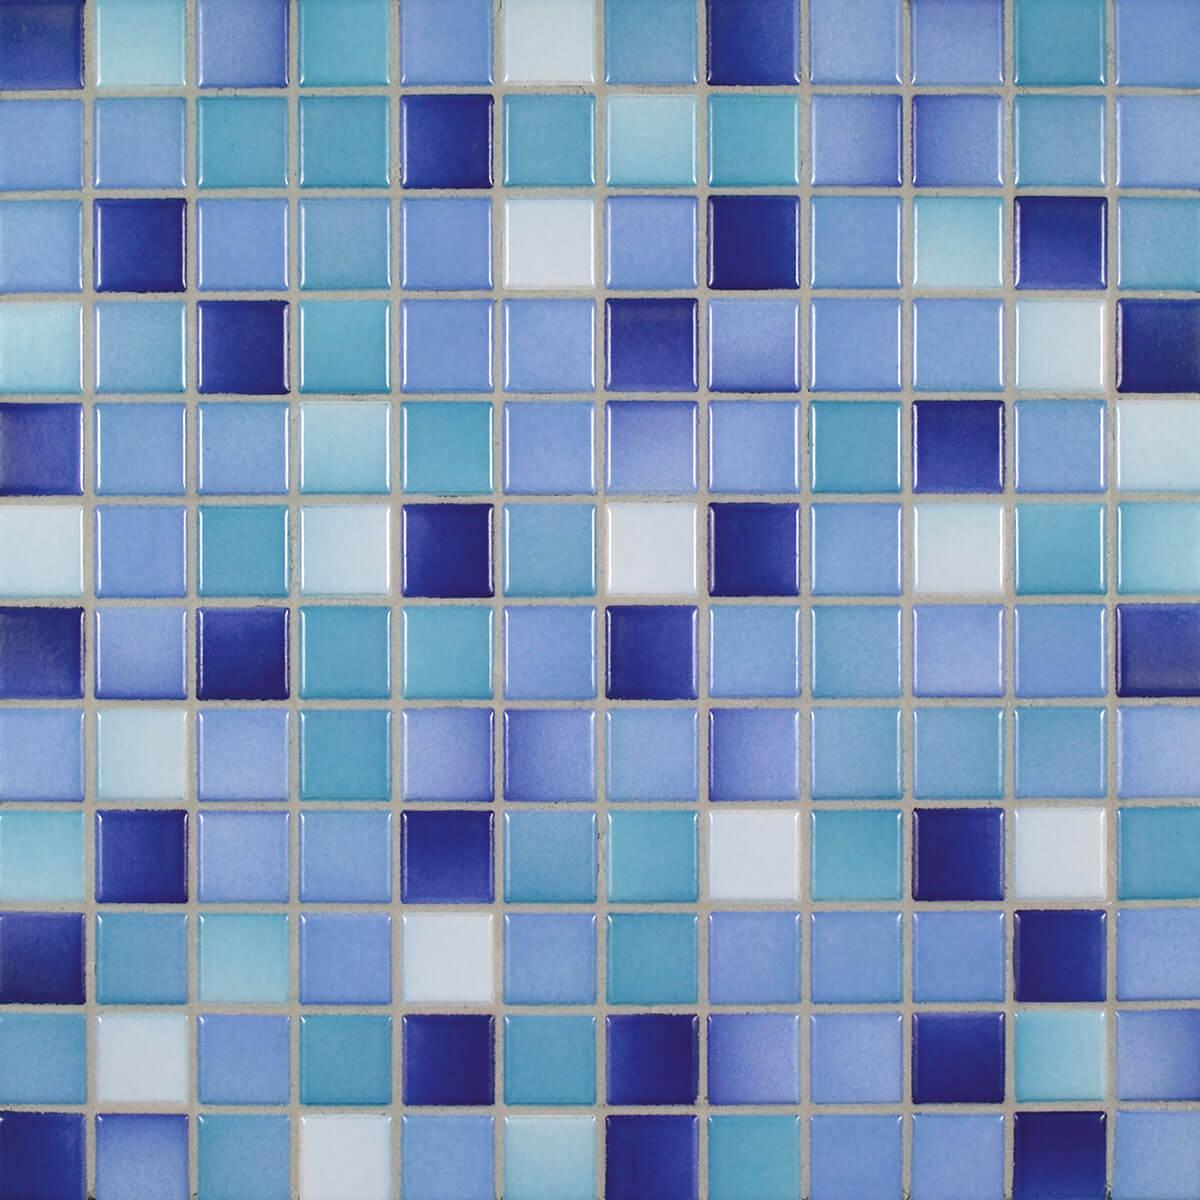 Agrob Buchtal Tiles - KLAY_Plural-_0007_BLUE25-–-5730I-7160H-SPHERE-COOL